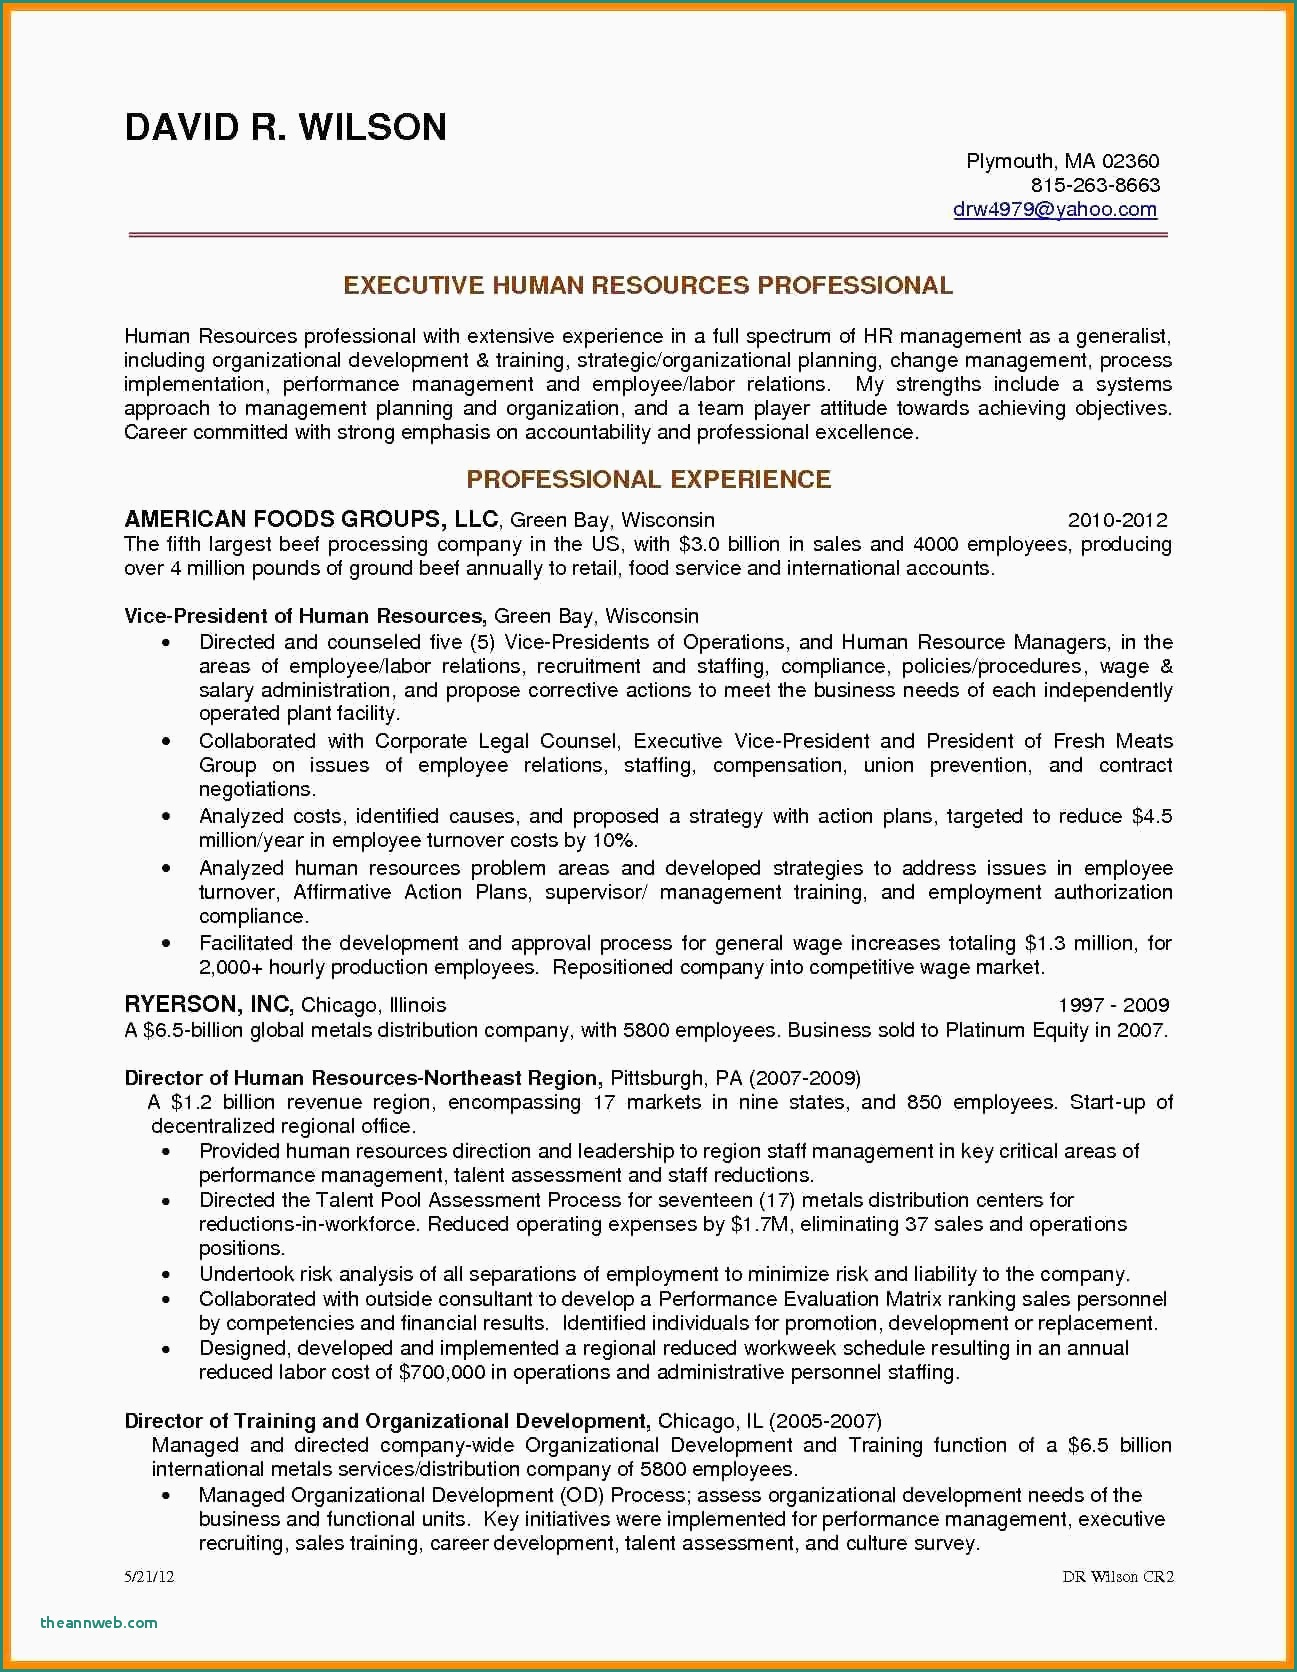 Resume Writing Services Chicago - Professional Cv and Cover Letter Writing Service Resume Writing